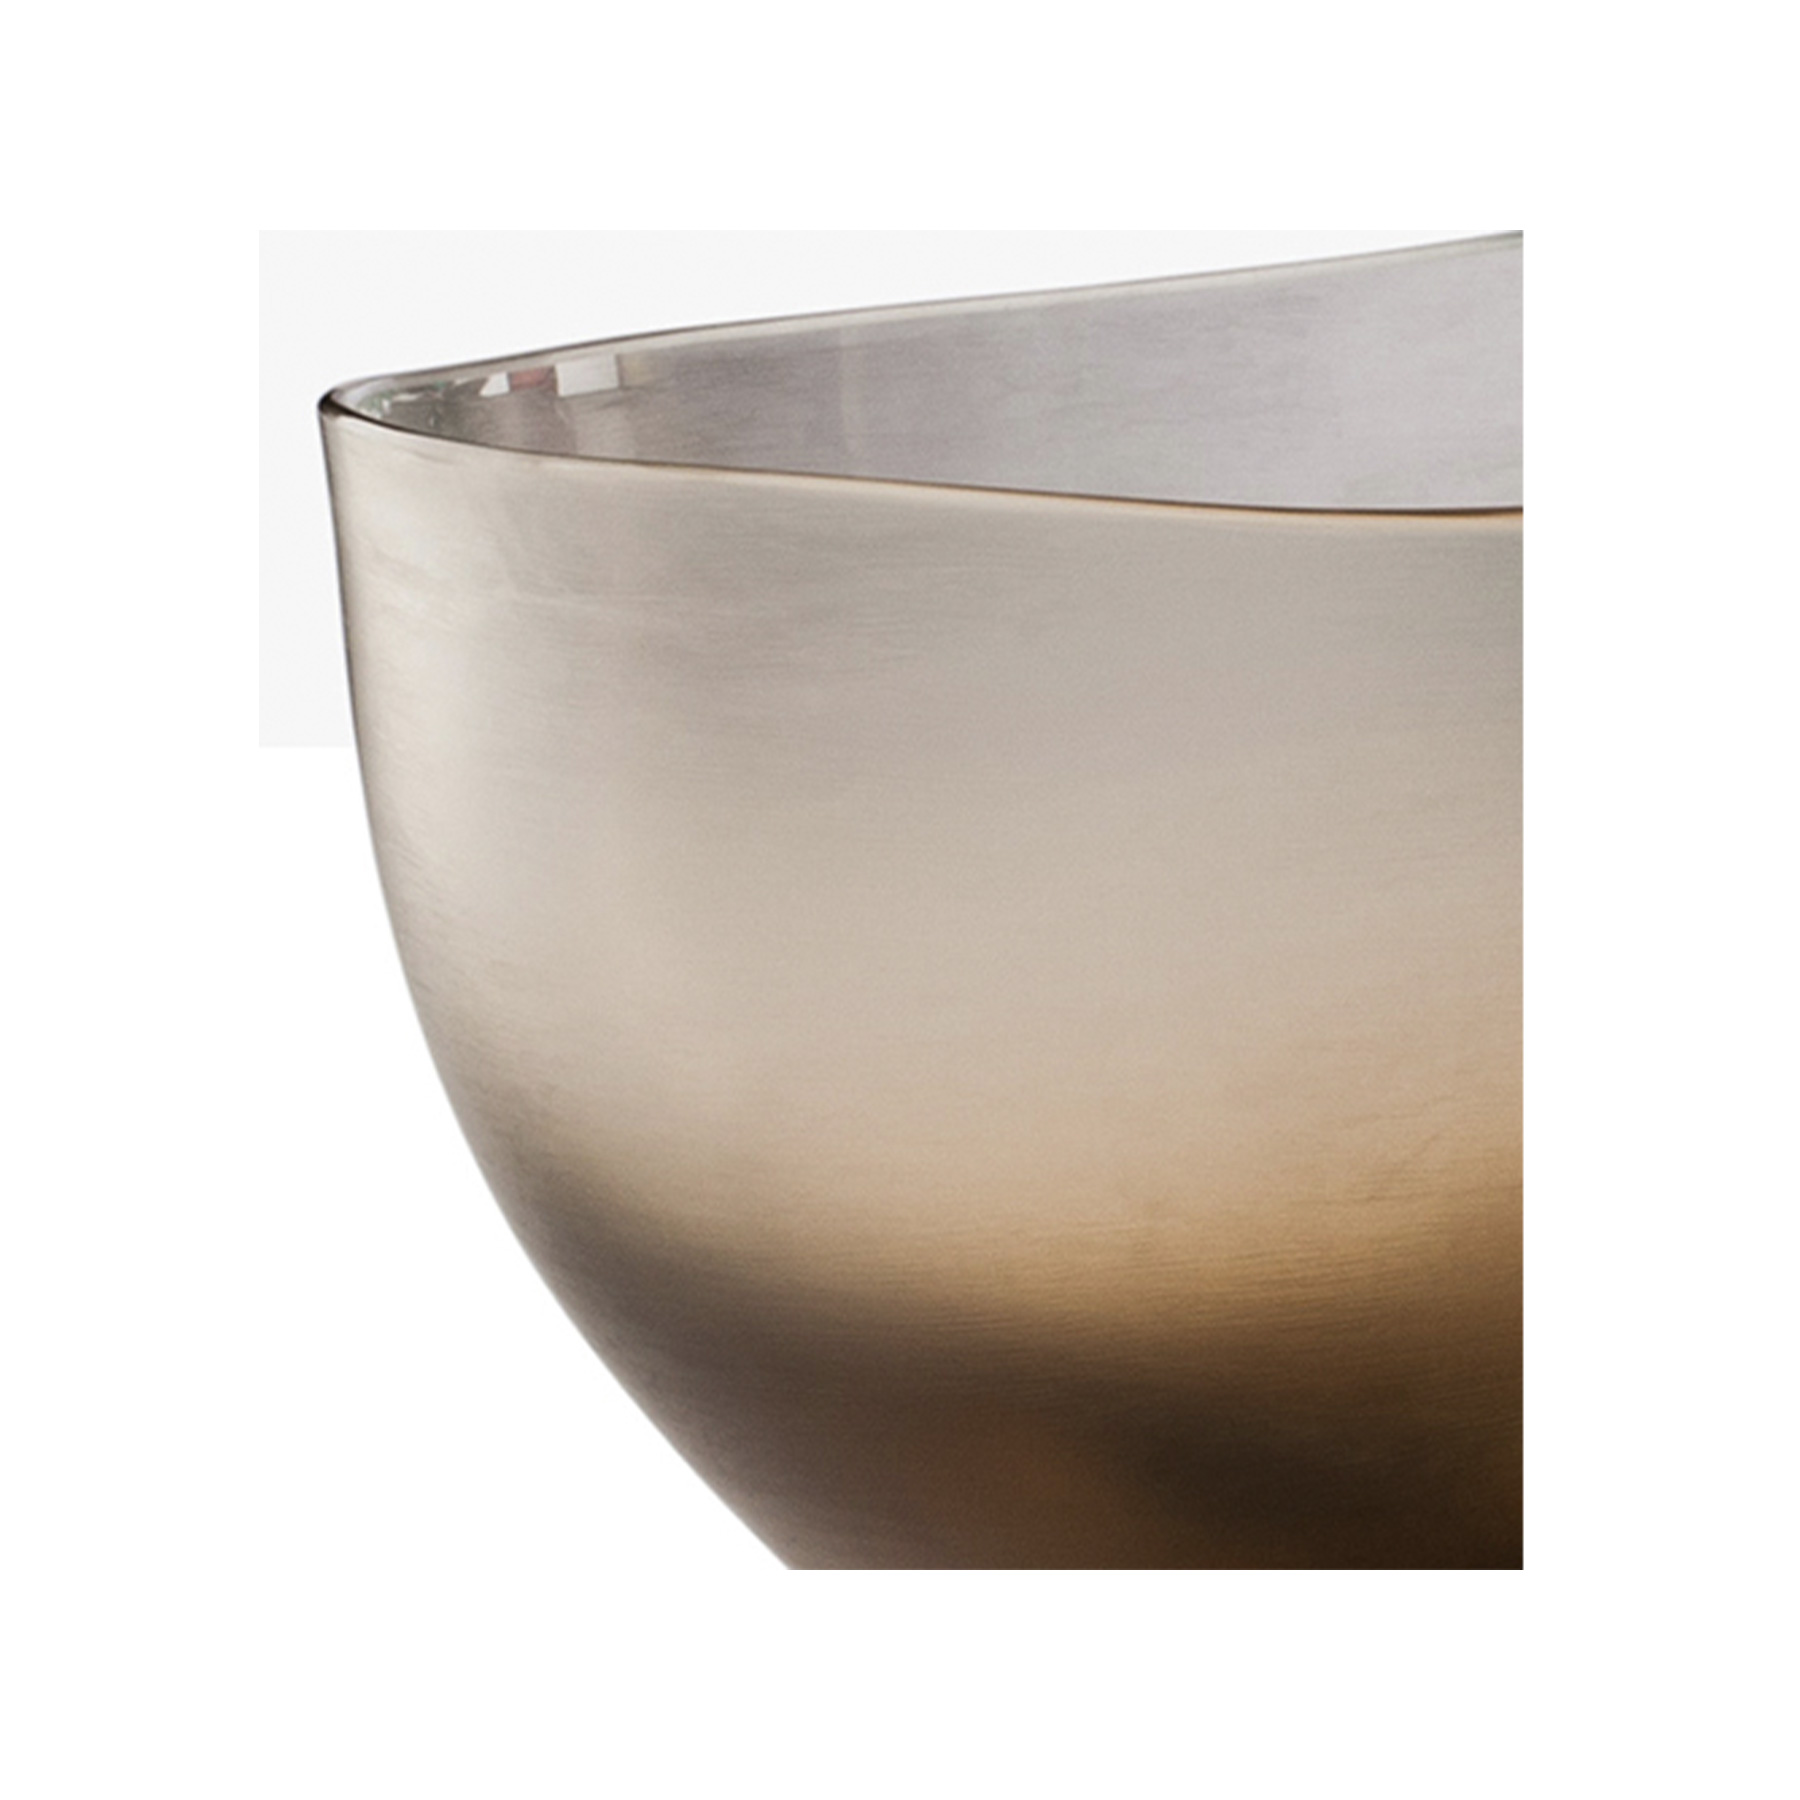 """Incisi Quartz Bowl - Part of the """"Incisi"""" collection, they are named after a complex and sophisticated technique. This glass is cold-engraved with gentle colours, refined and subdued. They invite you to lightly caress them. A multitude of shapes and colours. Apparently, Paolo Venini had a knack for experimenting with Incisi. This exquisite mouth-blown glass vase boasts a striking quartz colour and a wide shape with an asymmetrical rim.  